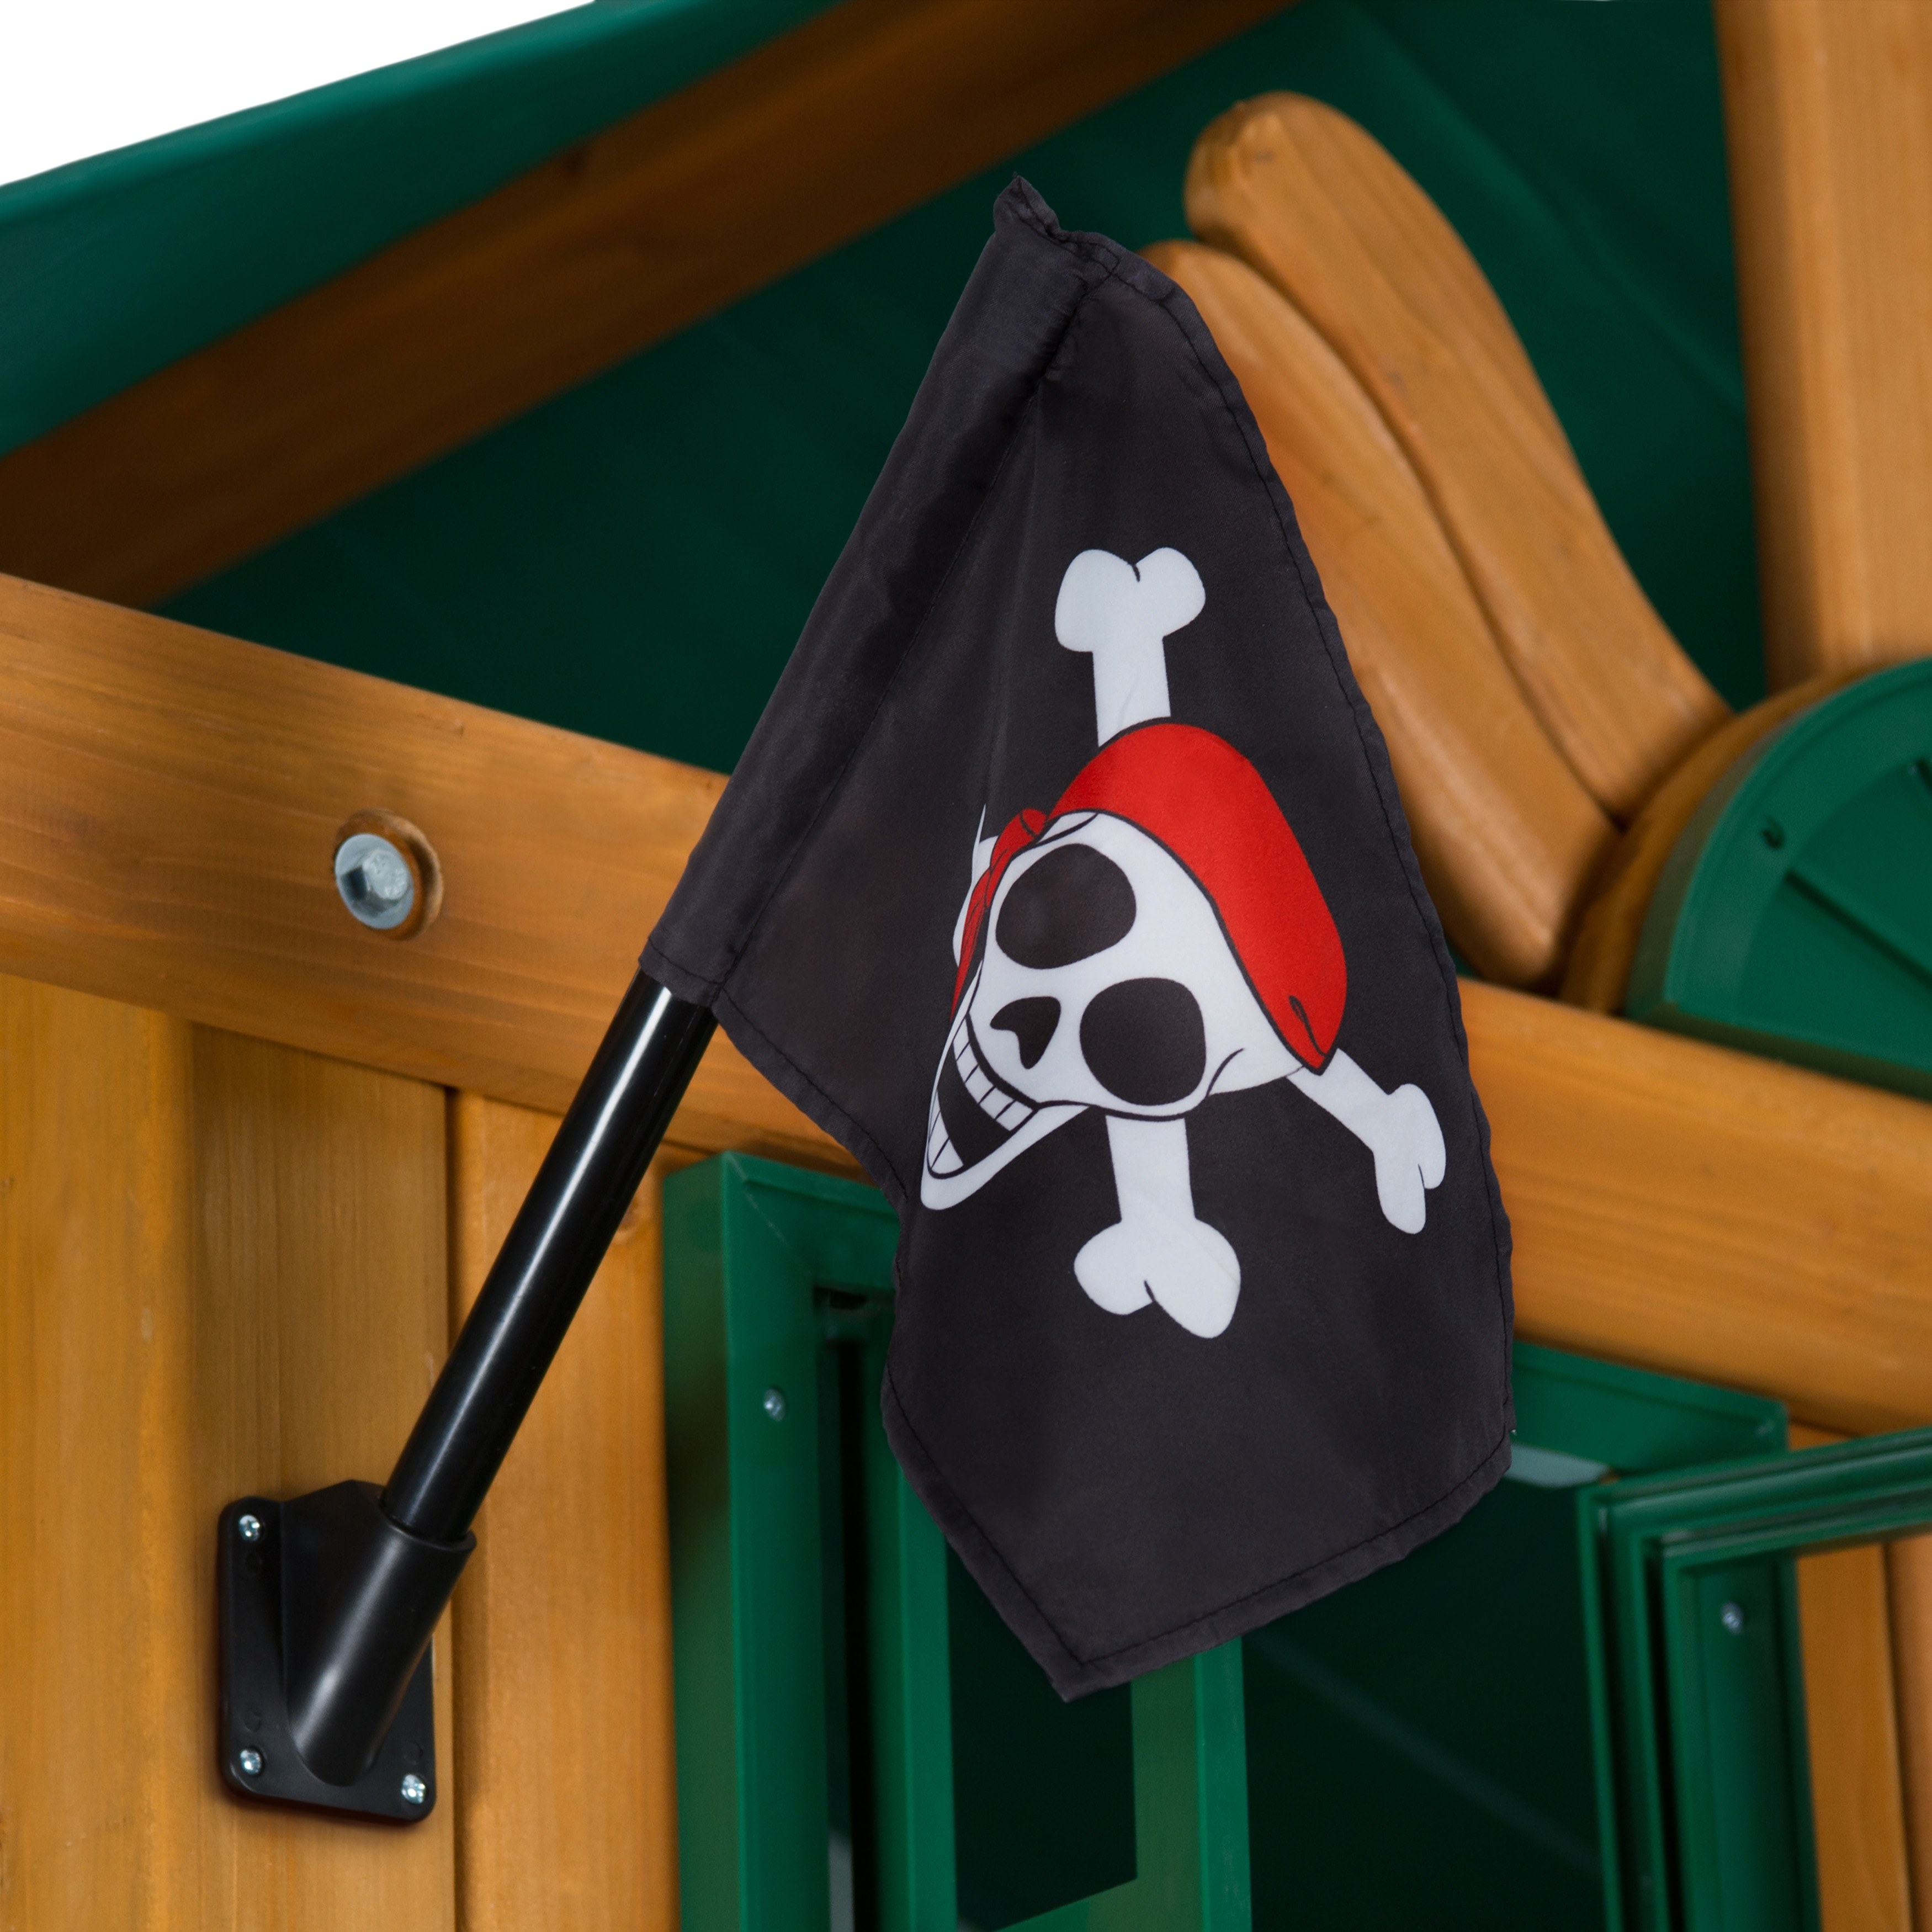 Gorilla Playsets Pirate Flag (Pirate Flag), Black